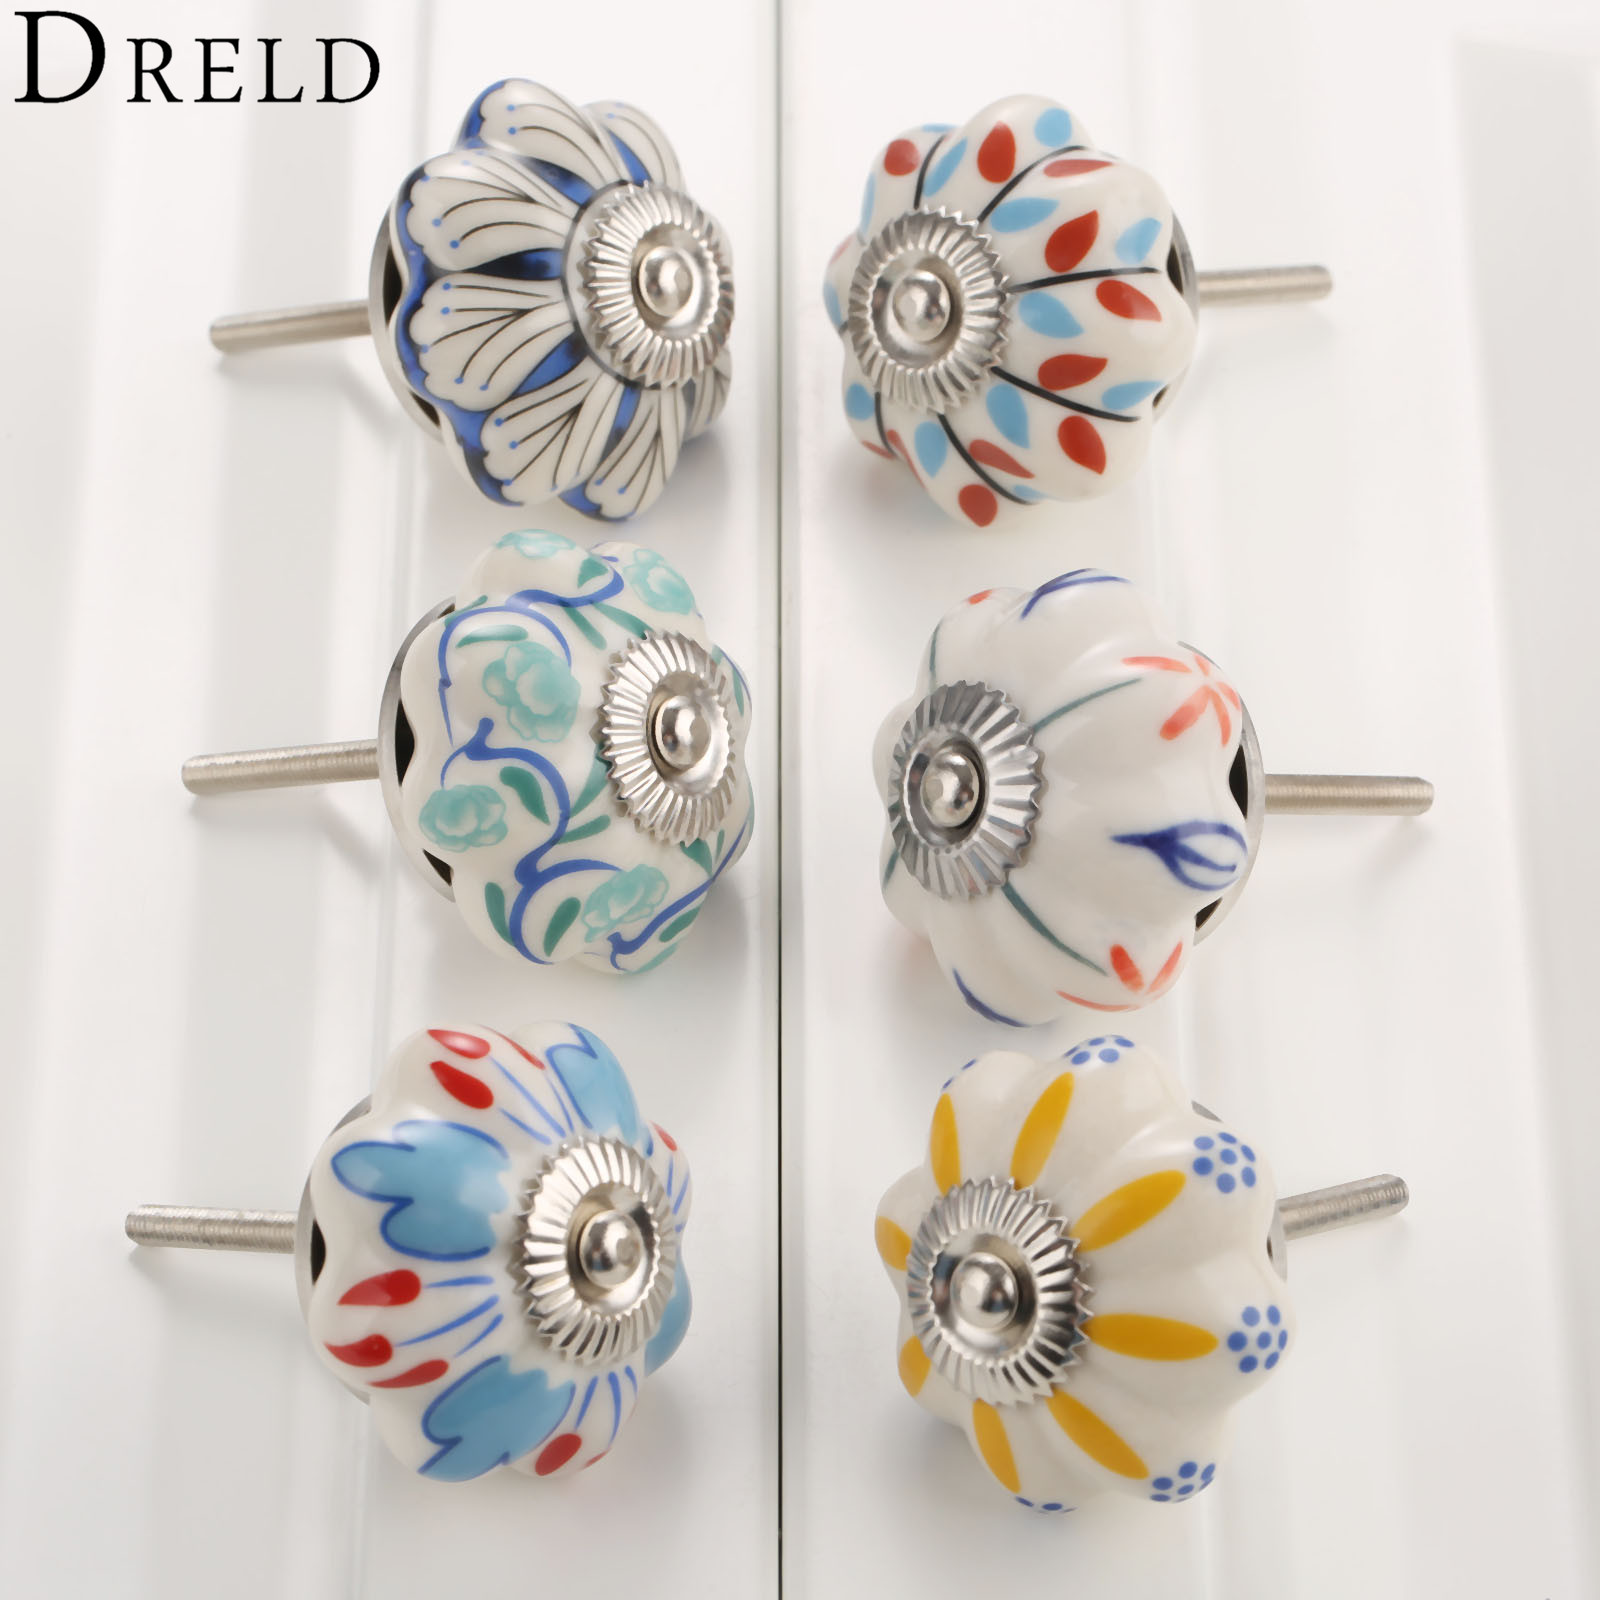 DRELD 40mm Furniture Handle Ceramic Drawer Cabinet Knobs and Handles Knobs Door Cupboard Kitchen Pull Handles Furniture Hardware струбцина stayer f образная 50х250мм 3210 050 250 page 7